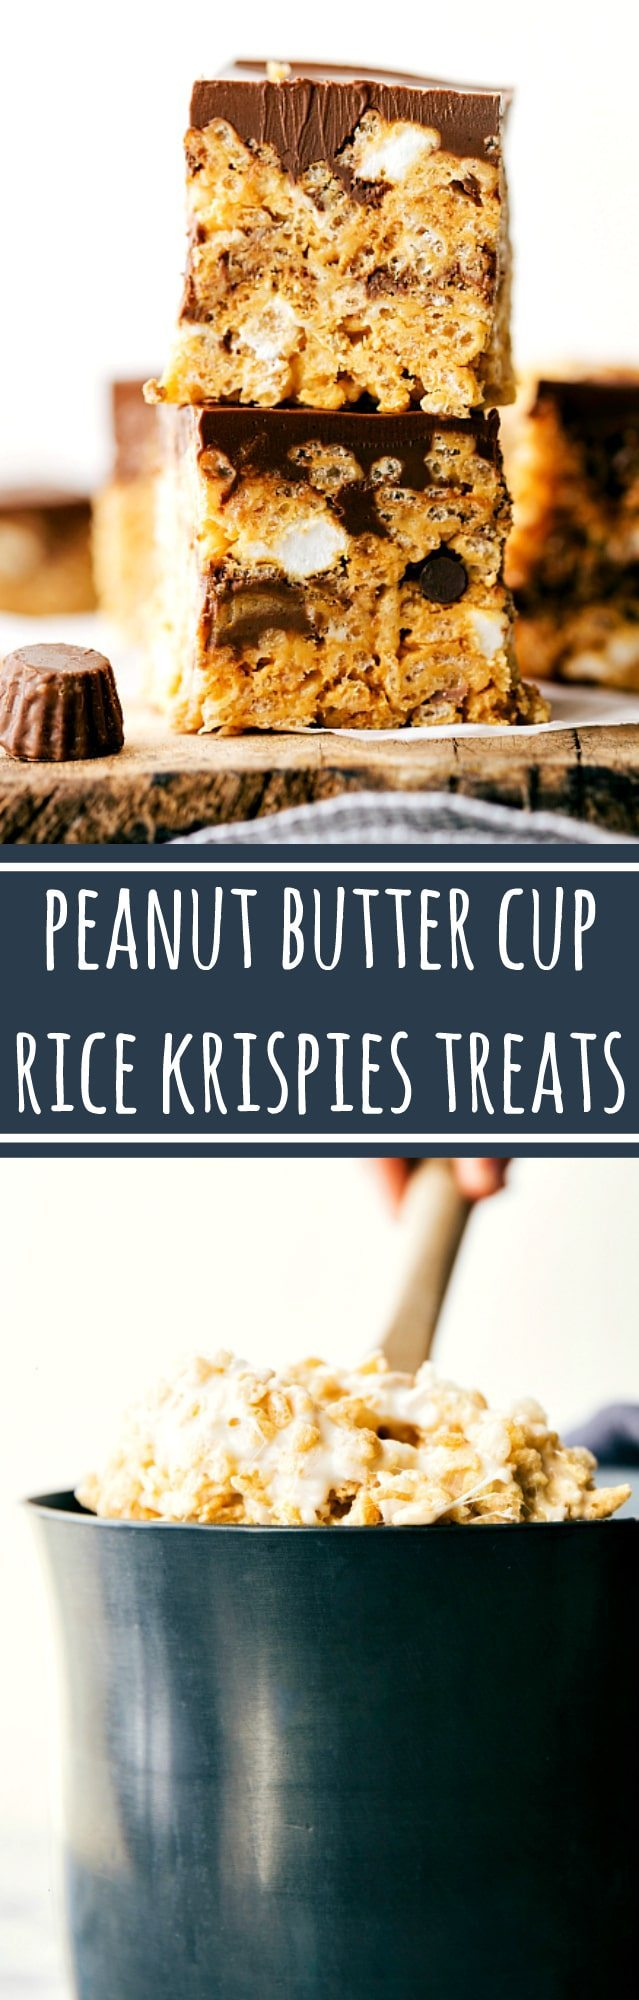 Delicious and easy peanut butter cup rice krispies treats